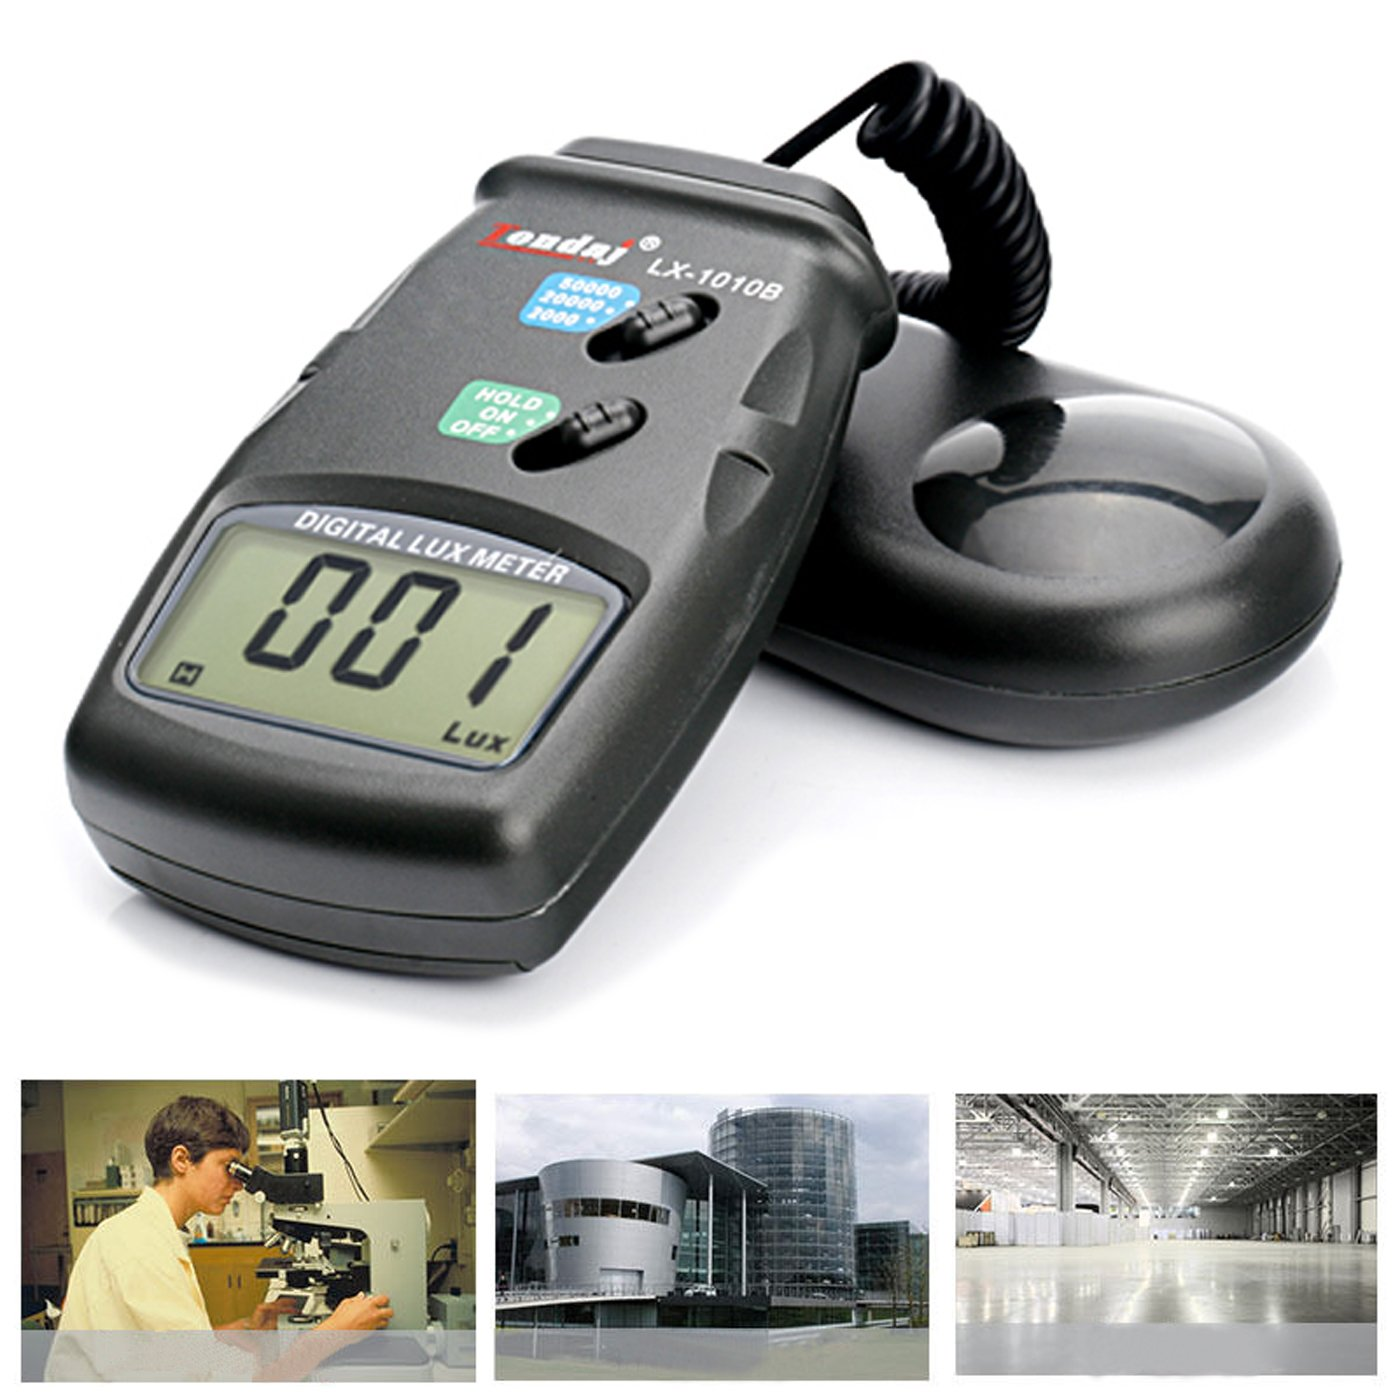 Digital Luxmeter/Digital Illuminance Light Meter with LCD Display 0.1-50,000 Lux Range by HDE